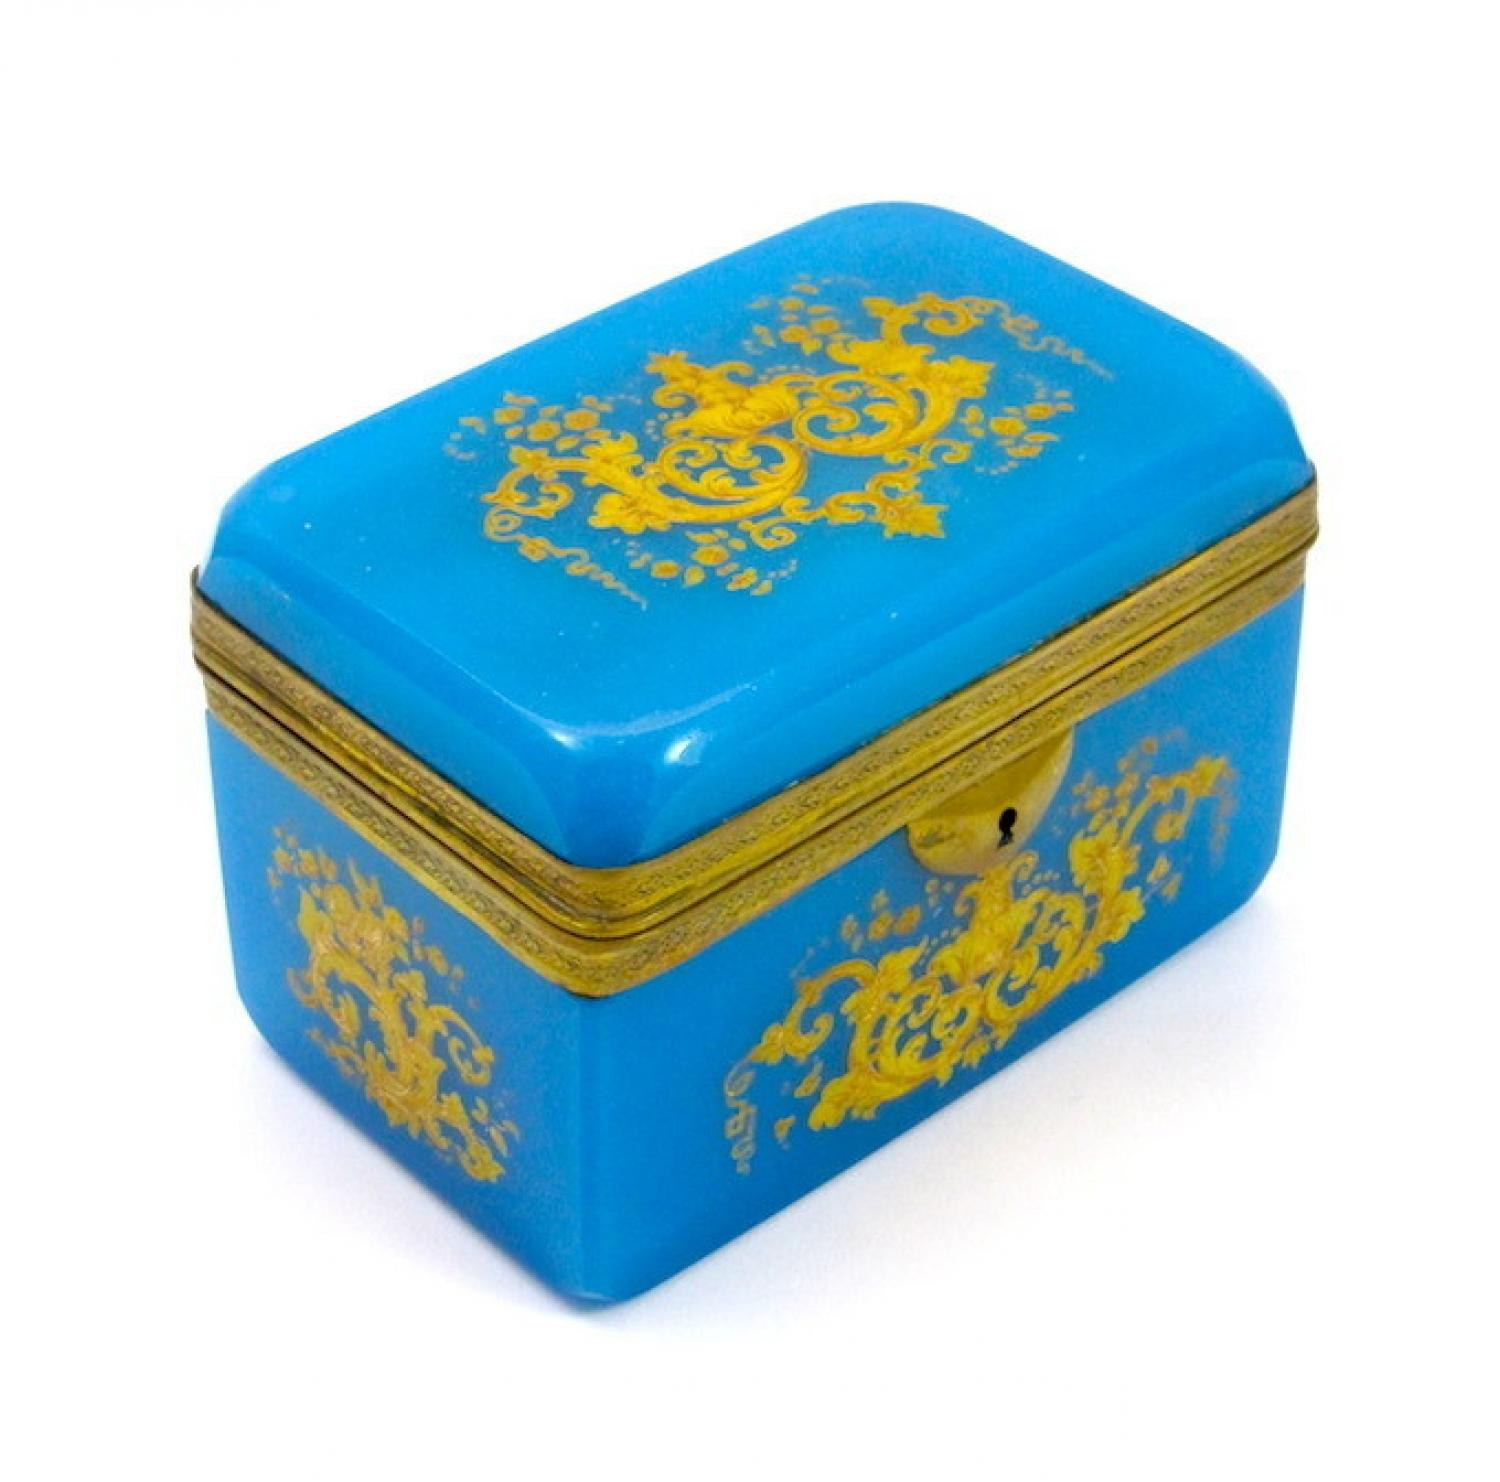 Antique Blue Opaline Enamelled Casket Box